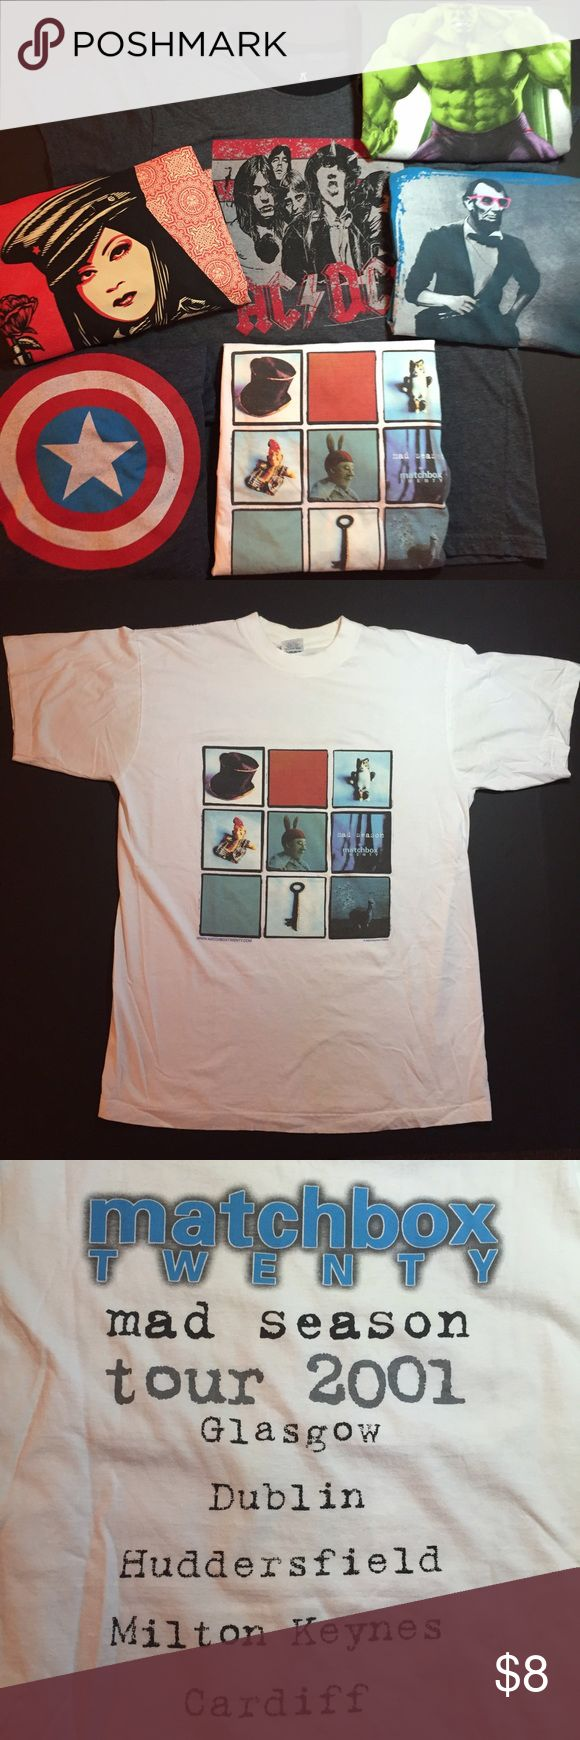 Matchbox 20 HEROES & ICONS SERIES T Iconic millennial band Matchbox 20 concert t. Maybe this shirt could be the participation award you never got for following the band. Regardless, this t has a fantastic graphic, get this one for the fan or for the fun. Just don't wait or it will be gone. Shirts Tees - Short Sleeve